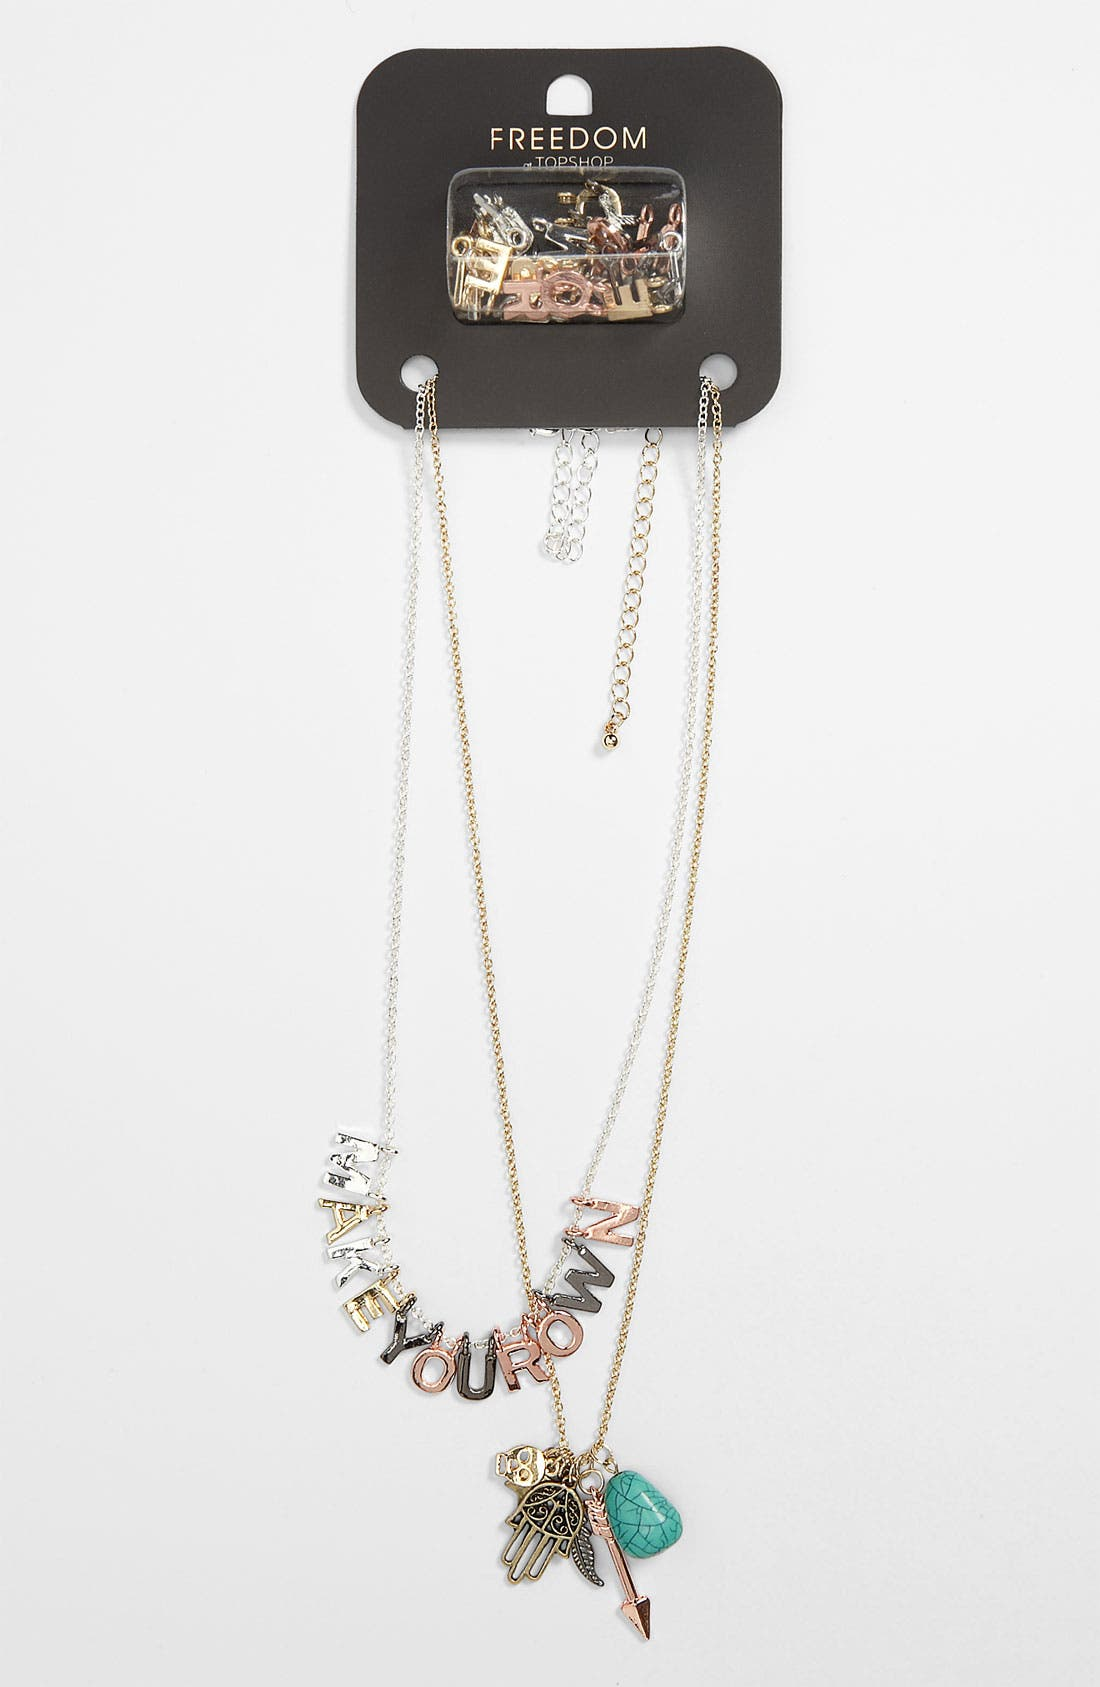 Alternate Image 1 Selected - Topshop 'Make Your Own' Necklace Kit